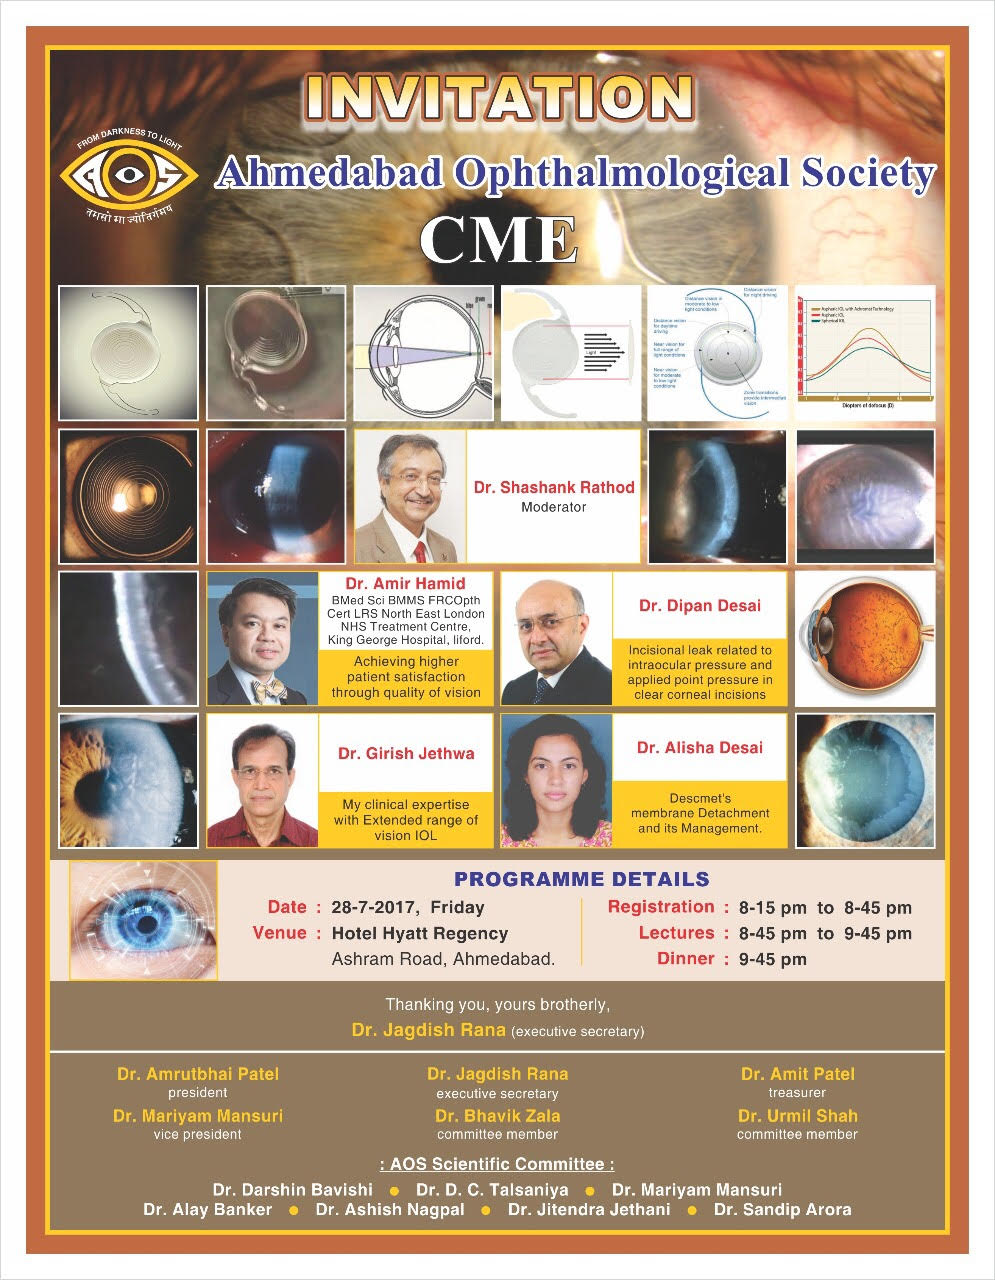 Ahmedabad Ophthalmological Society - CME